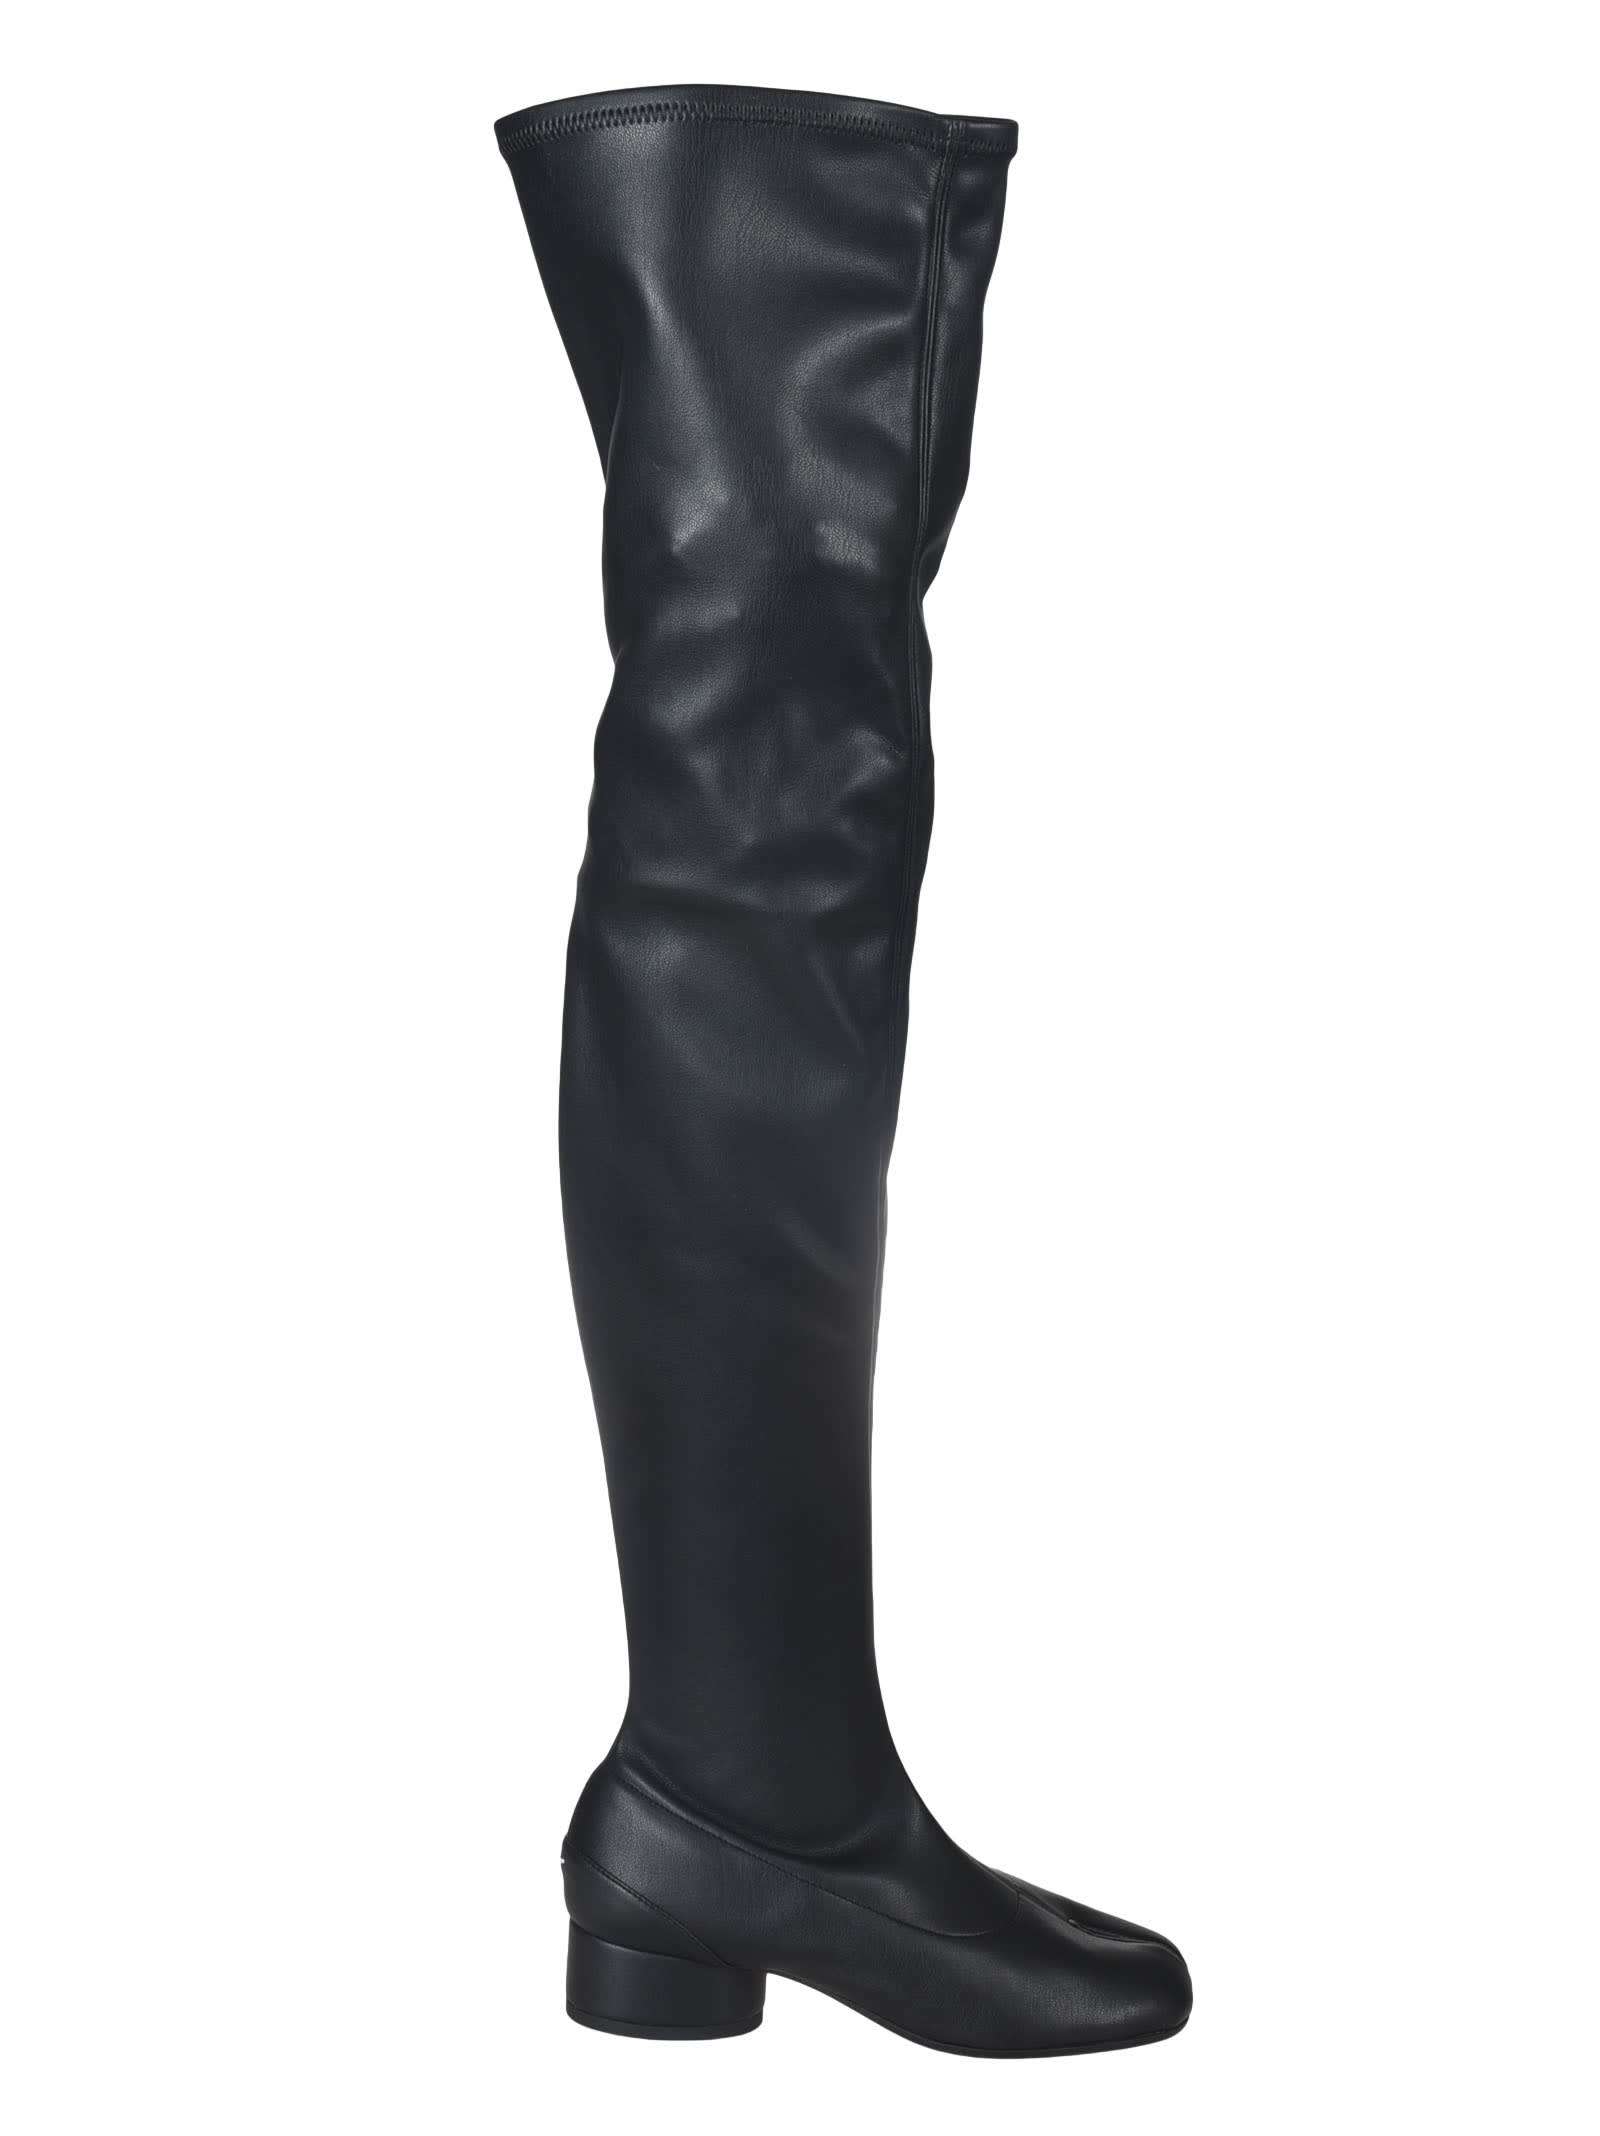 Buy Maison Margiela Cleft Toe Over-the-knee Boots online, shop Maison Margiela shoes with free shipping